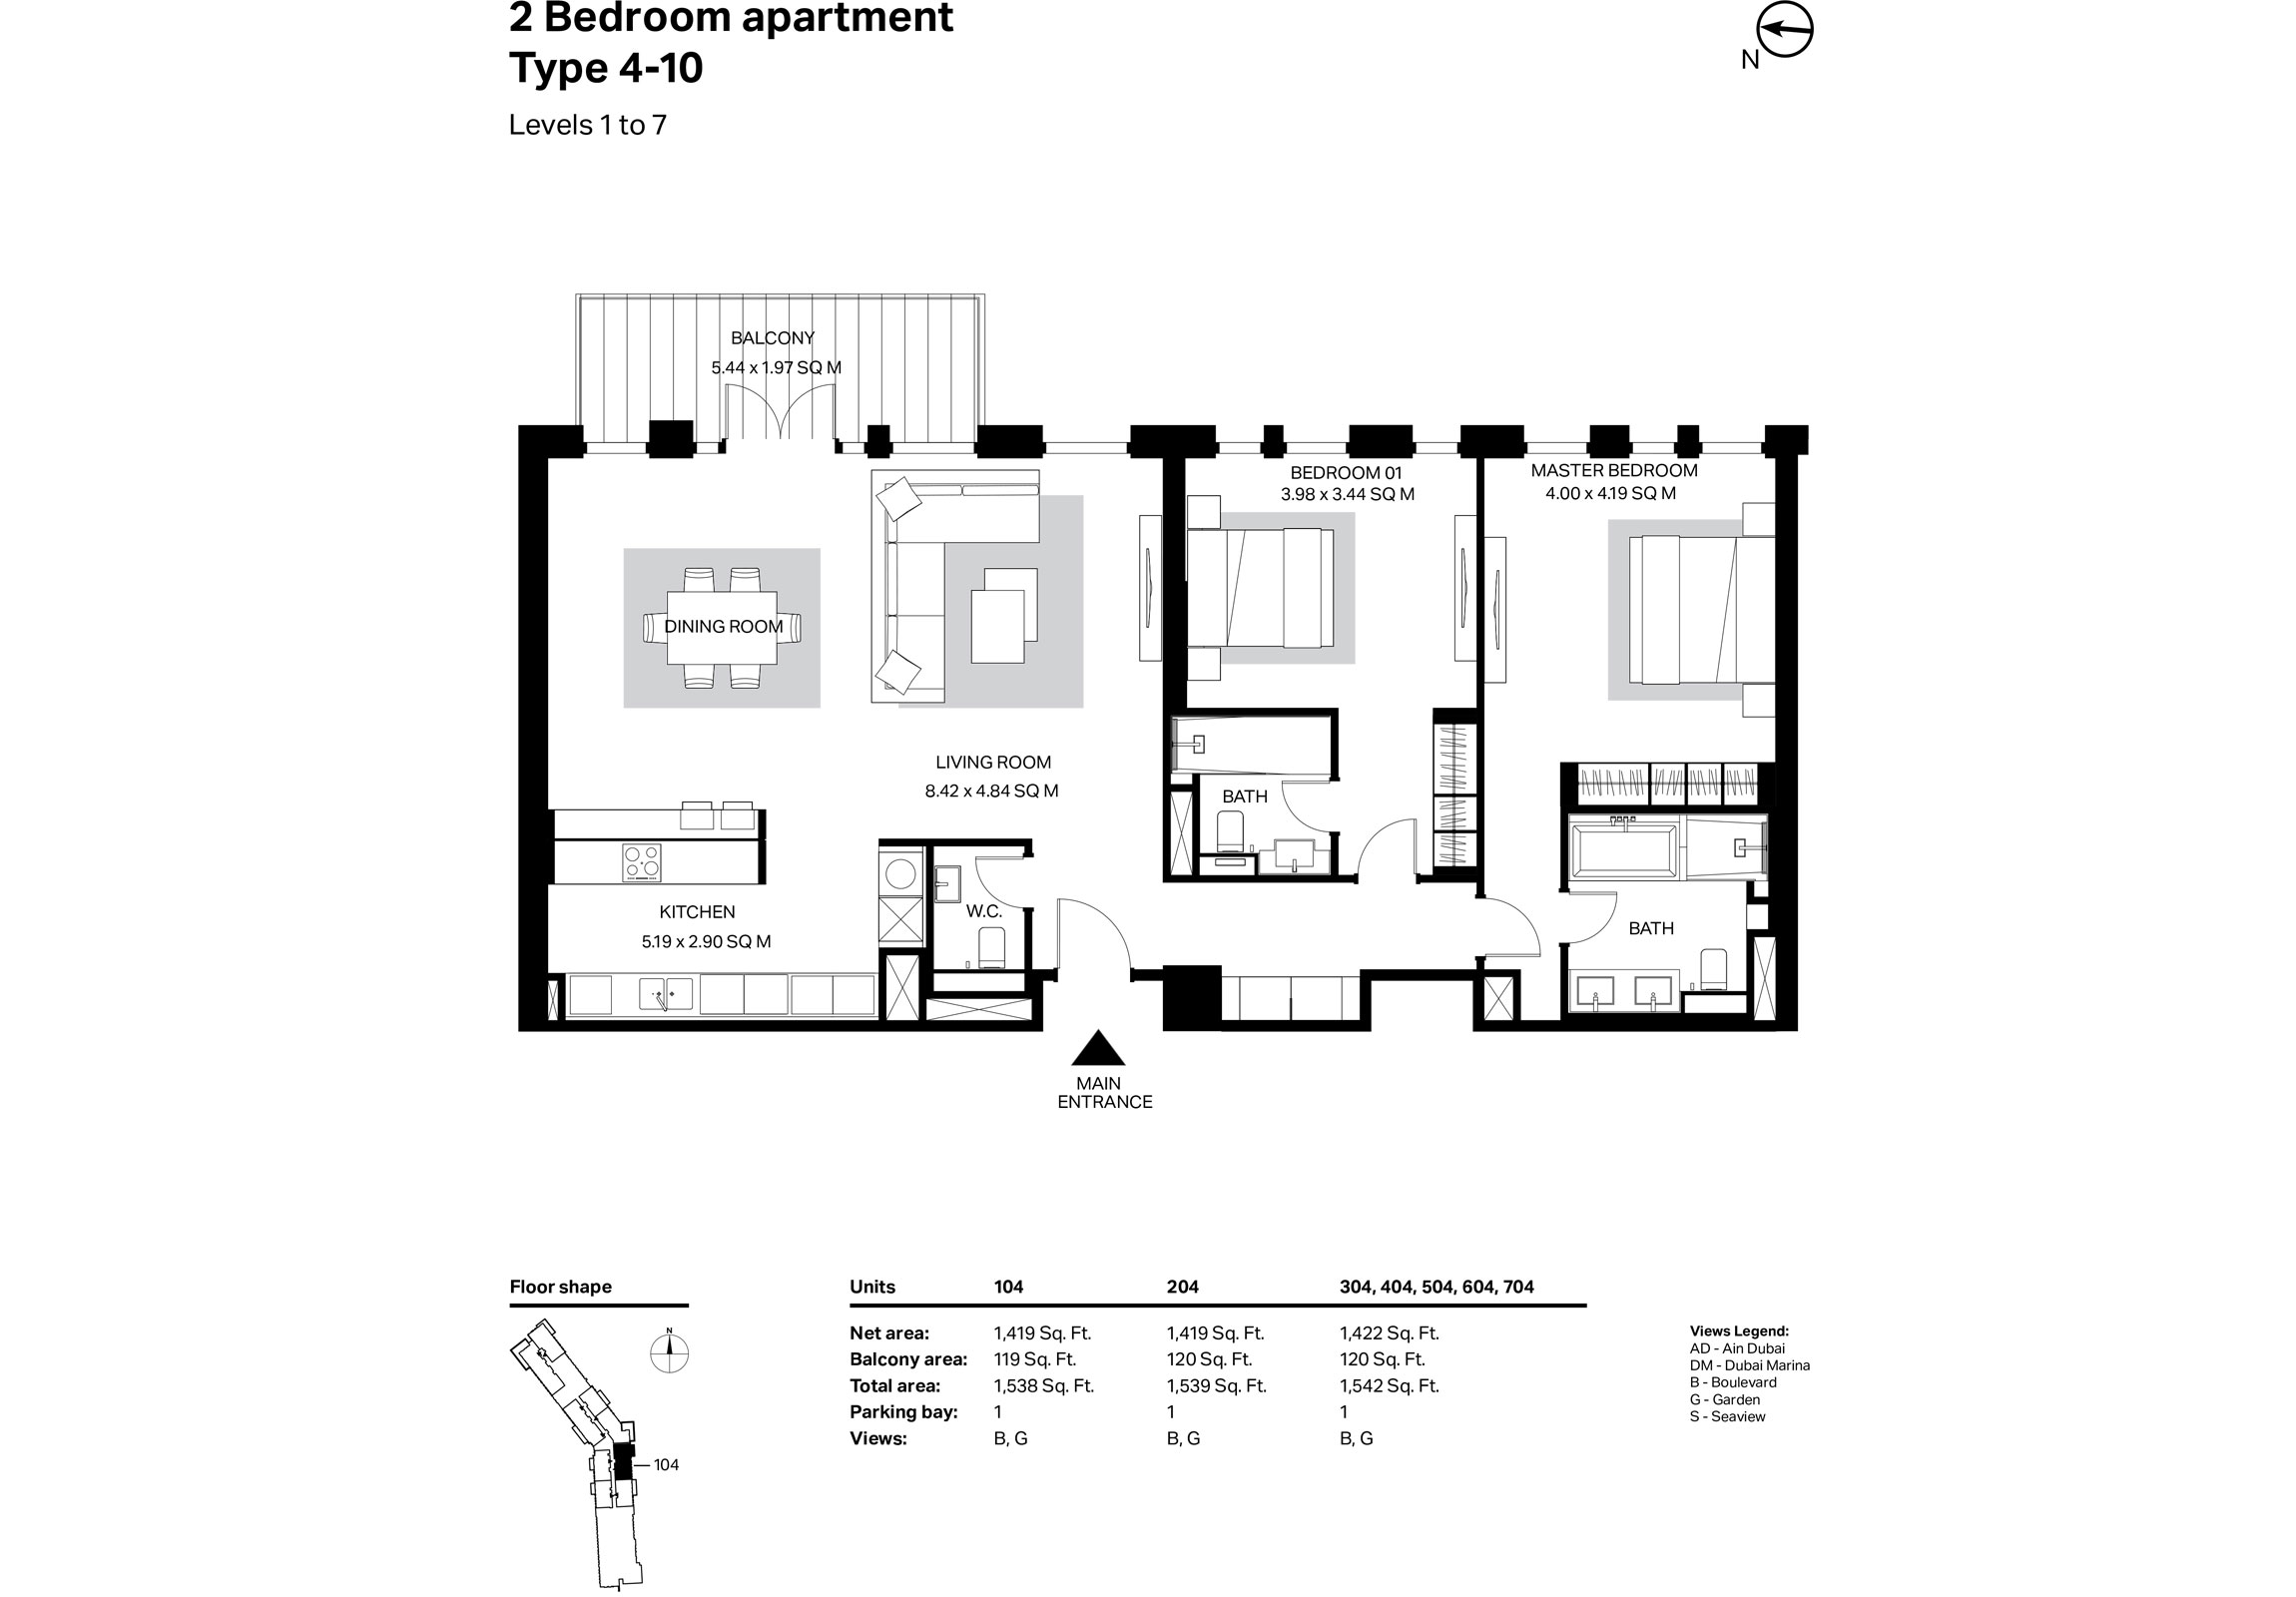 Building 2 - 2 Bedroom Type 4-10 Level 1 To 7 Size 1542    sq. ft.